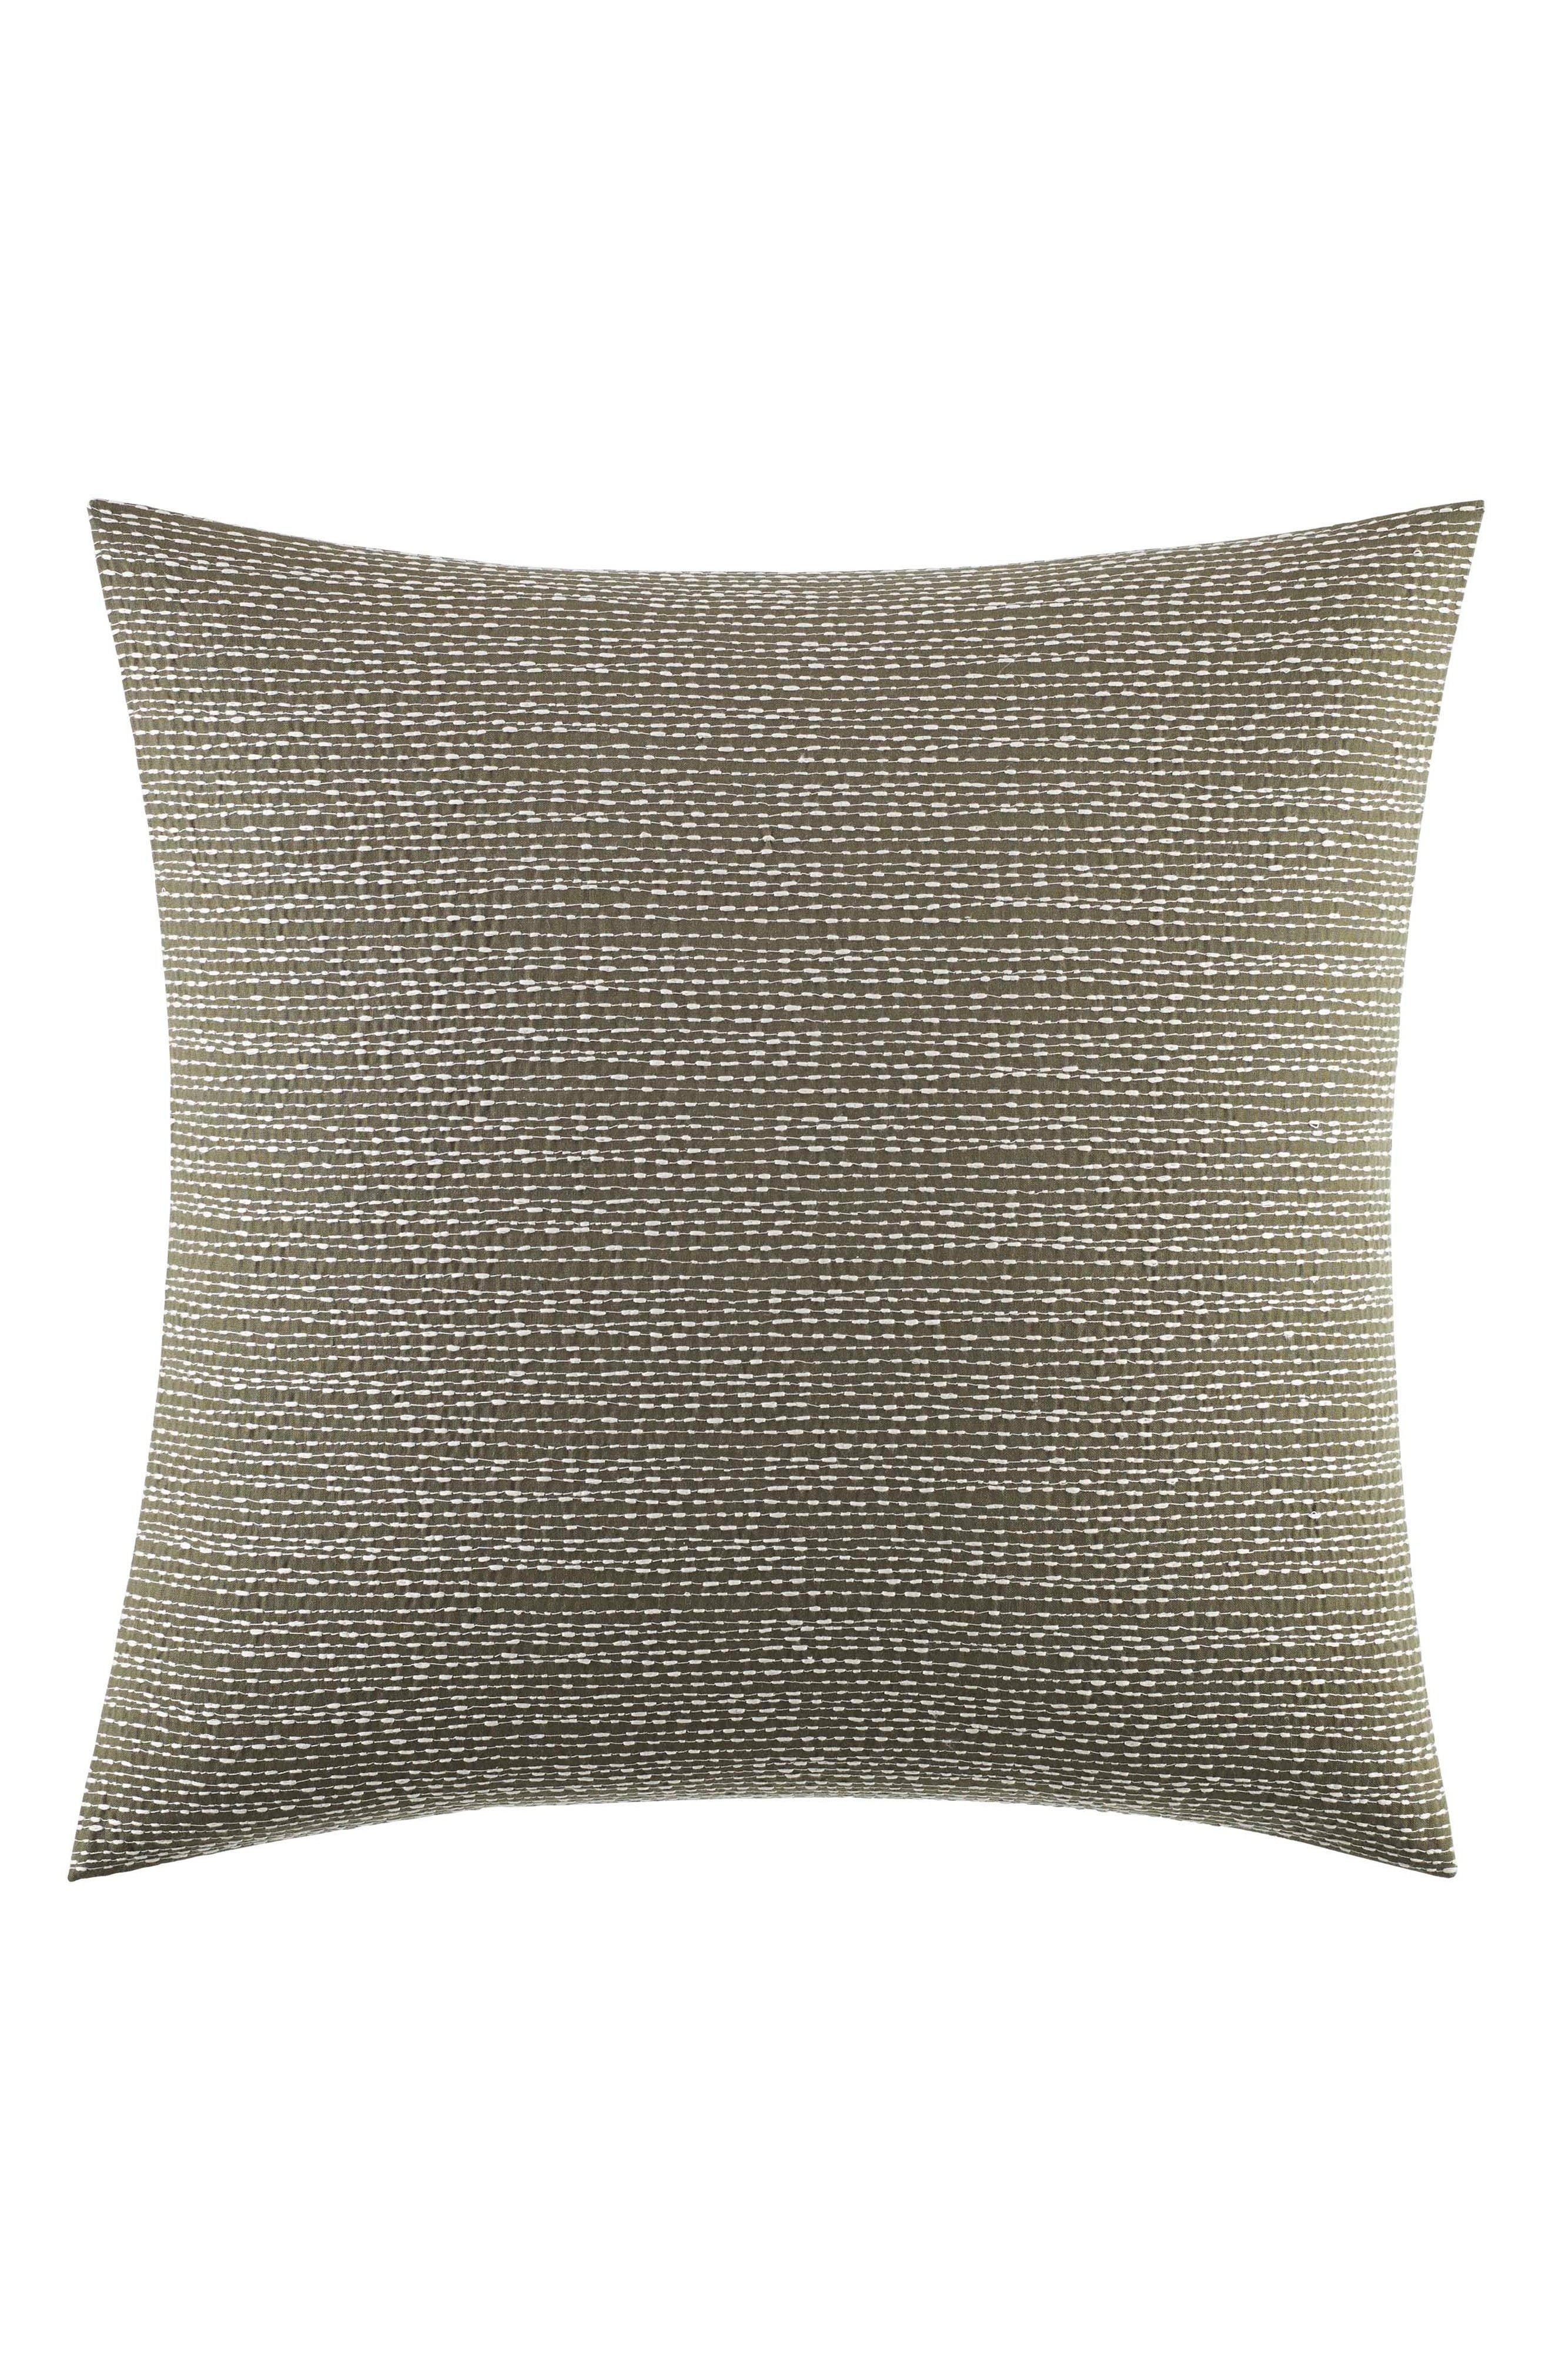 Dragonfly Accent Pillow,                             Main thumbnail 1, color,                             Grass Green